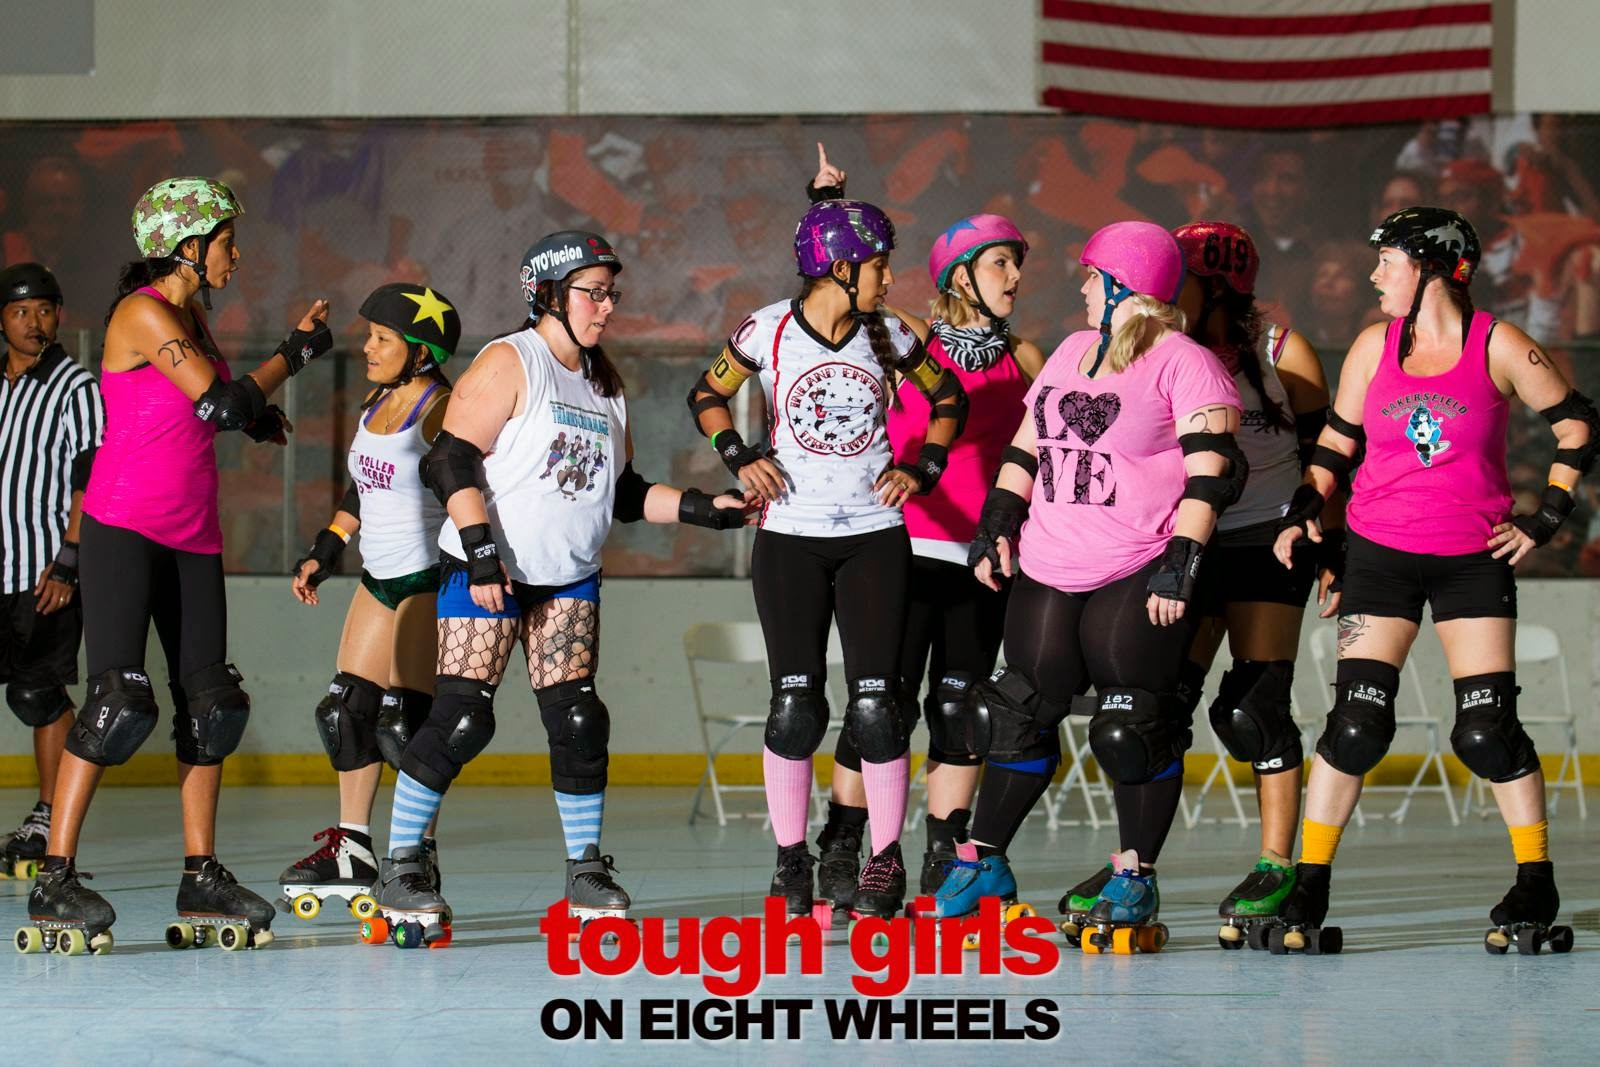 Roller skating visalia - And No One Is Giving An Inch